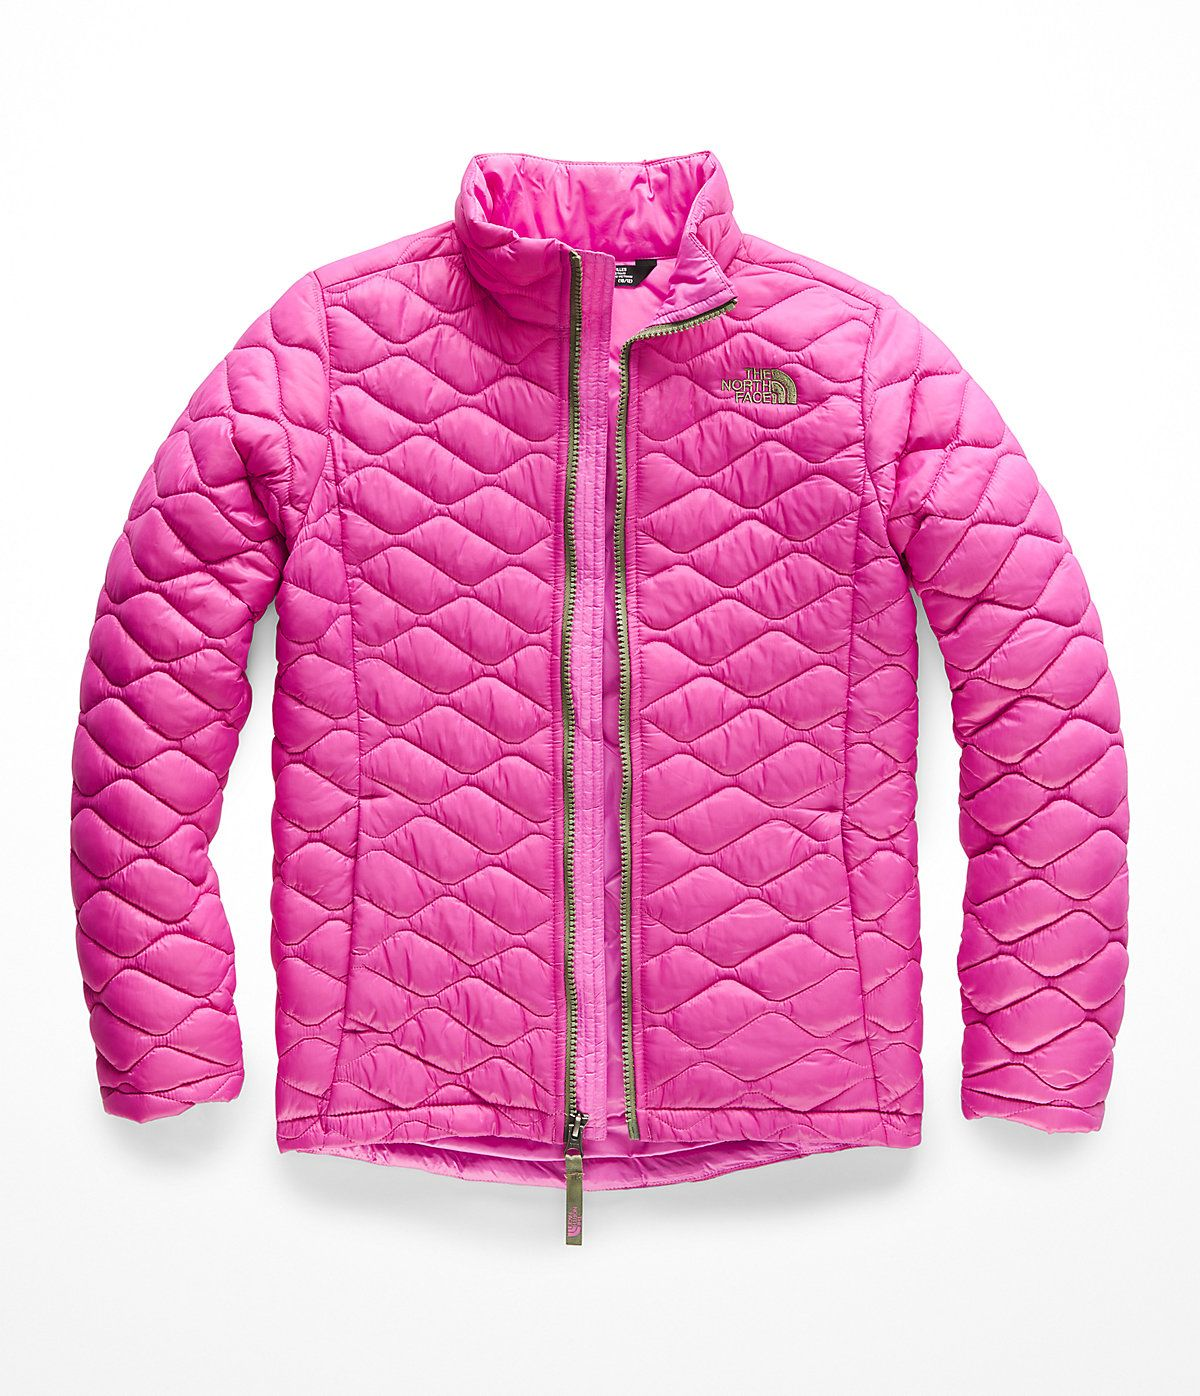 Youth Thermoball Eco Jacket The North Face North Face Kids North Face Girls The North Face [ 1396 x 1200 Pixel ]